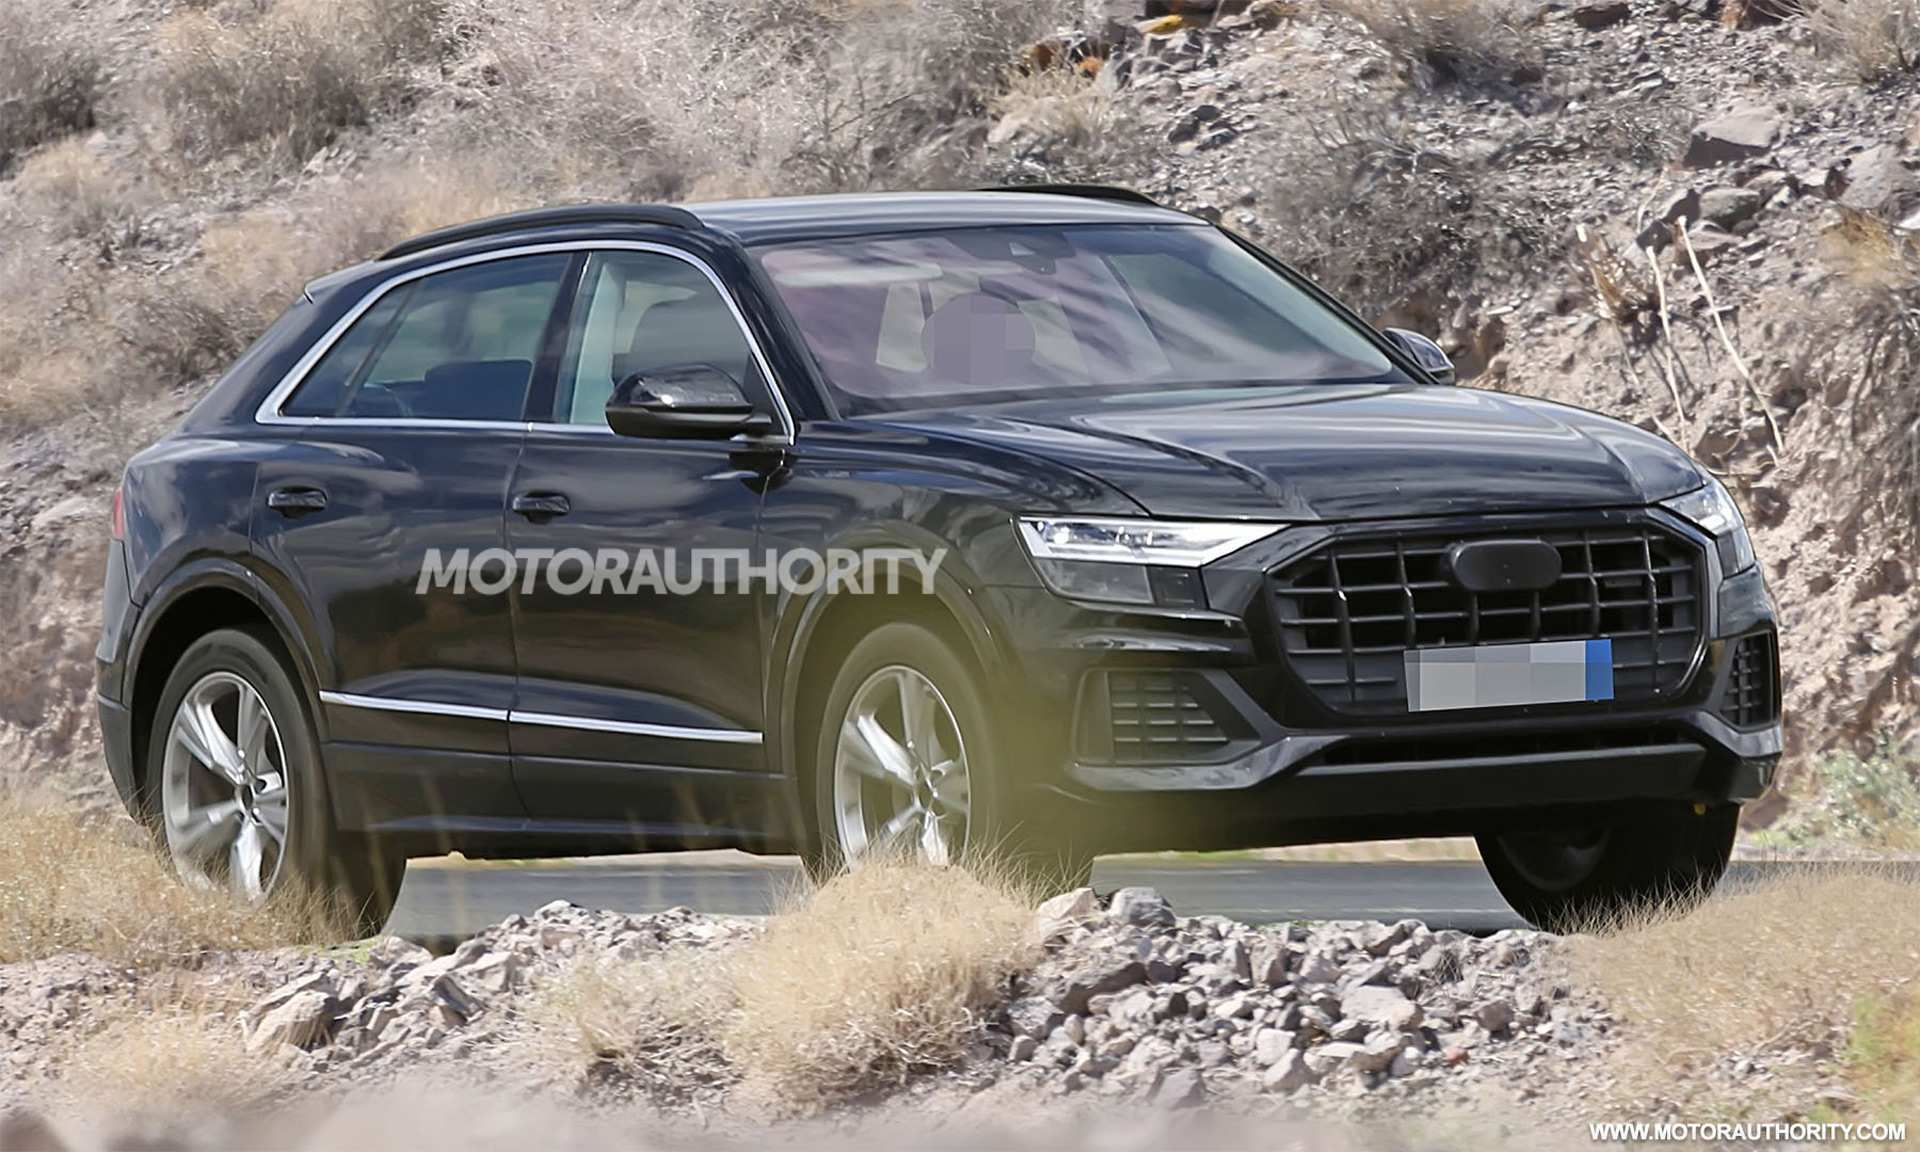 94 Great 2020 Audi Q7 Pricing by 2020 Audi Q7